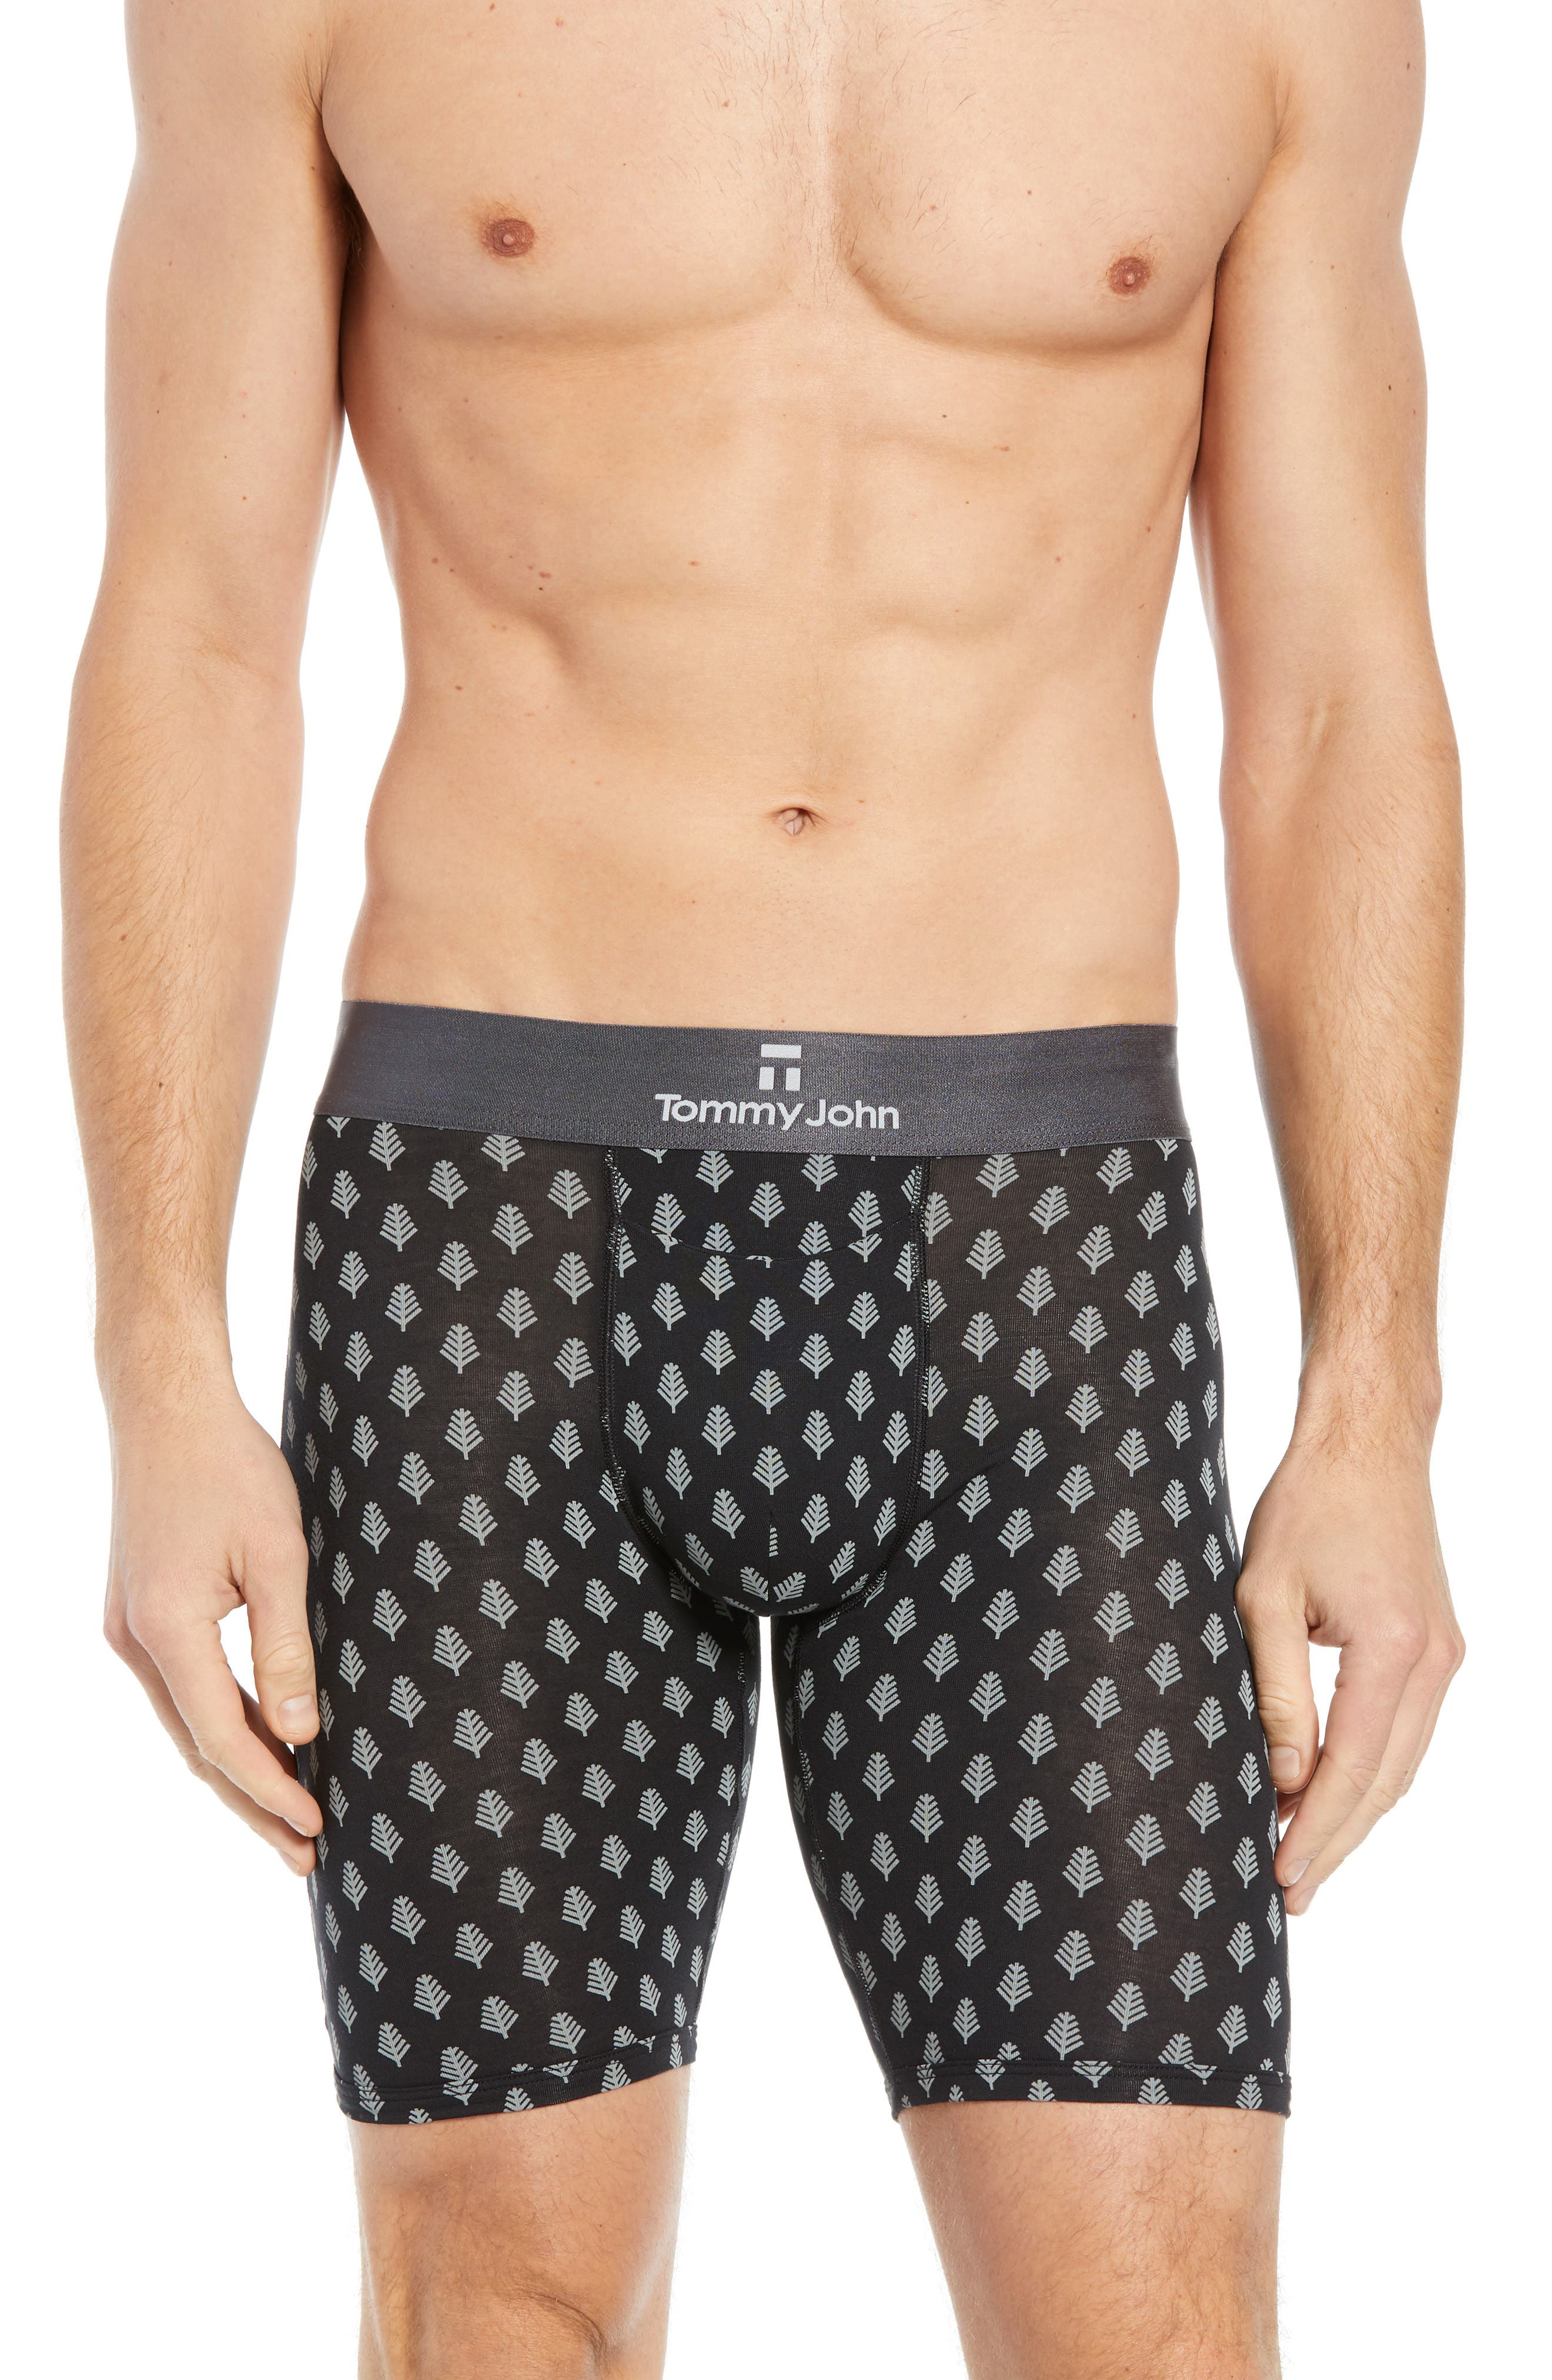 TOMMY JOHN Second Skin Snowy Forest Boxer Briefs in Black